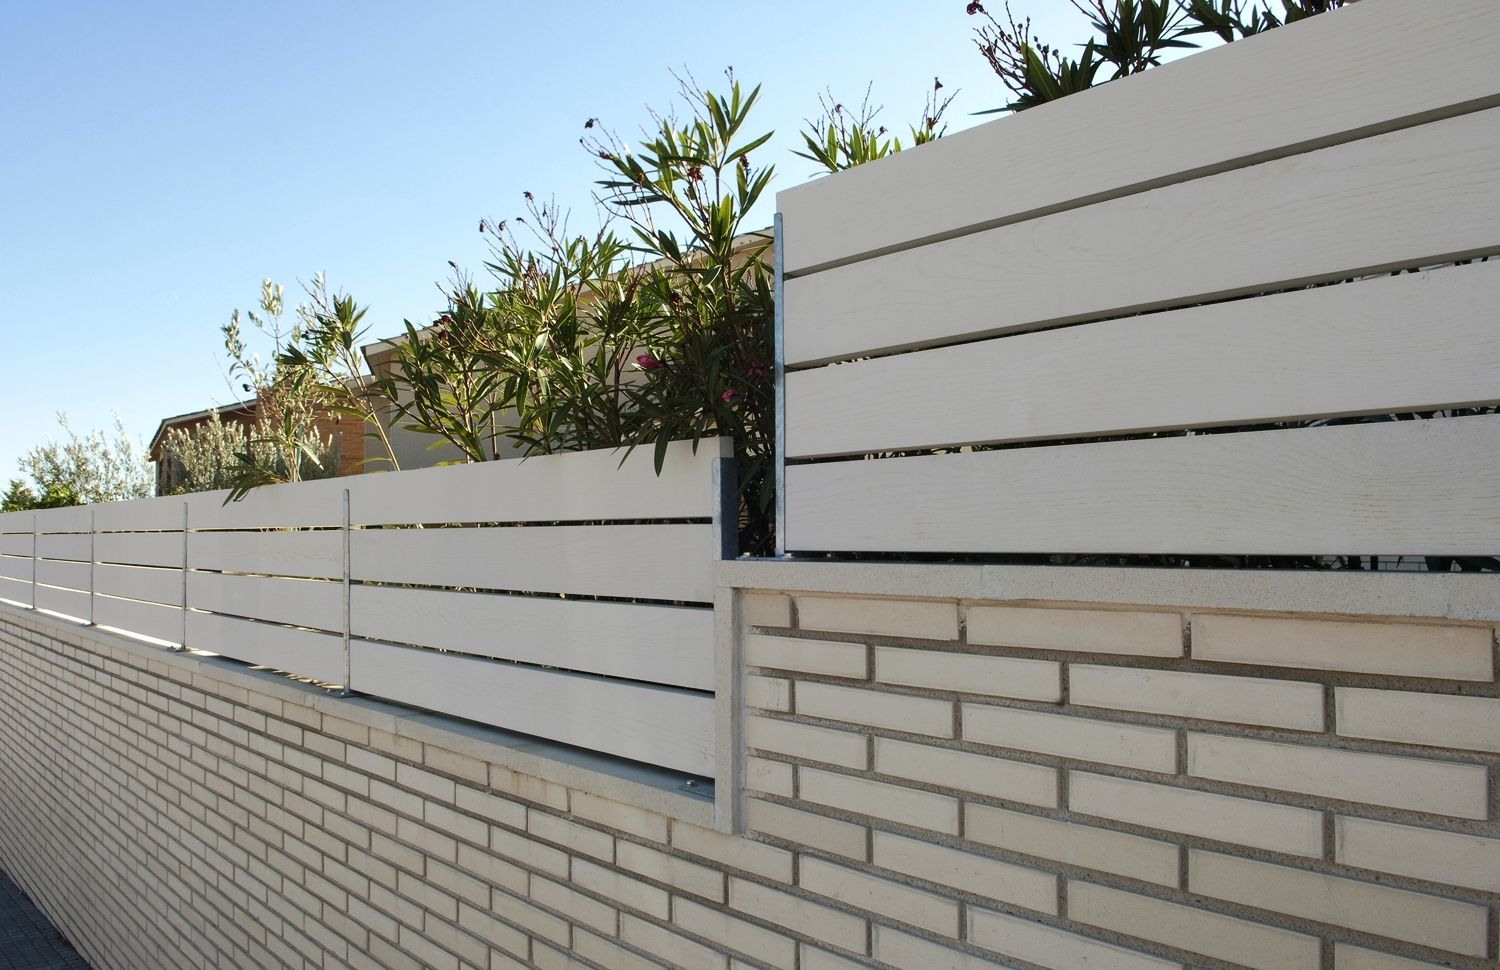 Valla para jardin vallas jardi pinterest valla for Valla metalica jardin